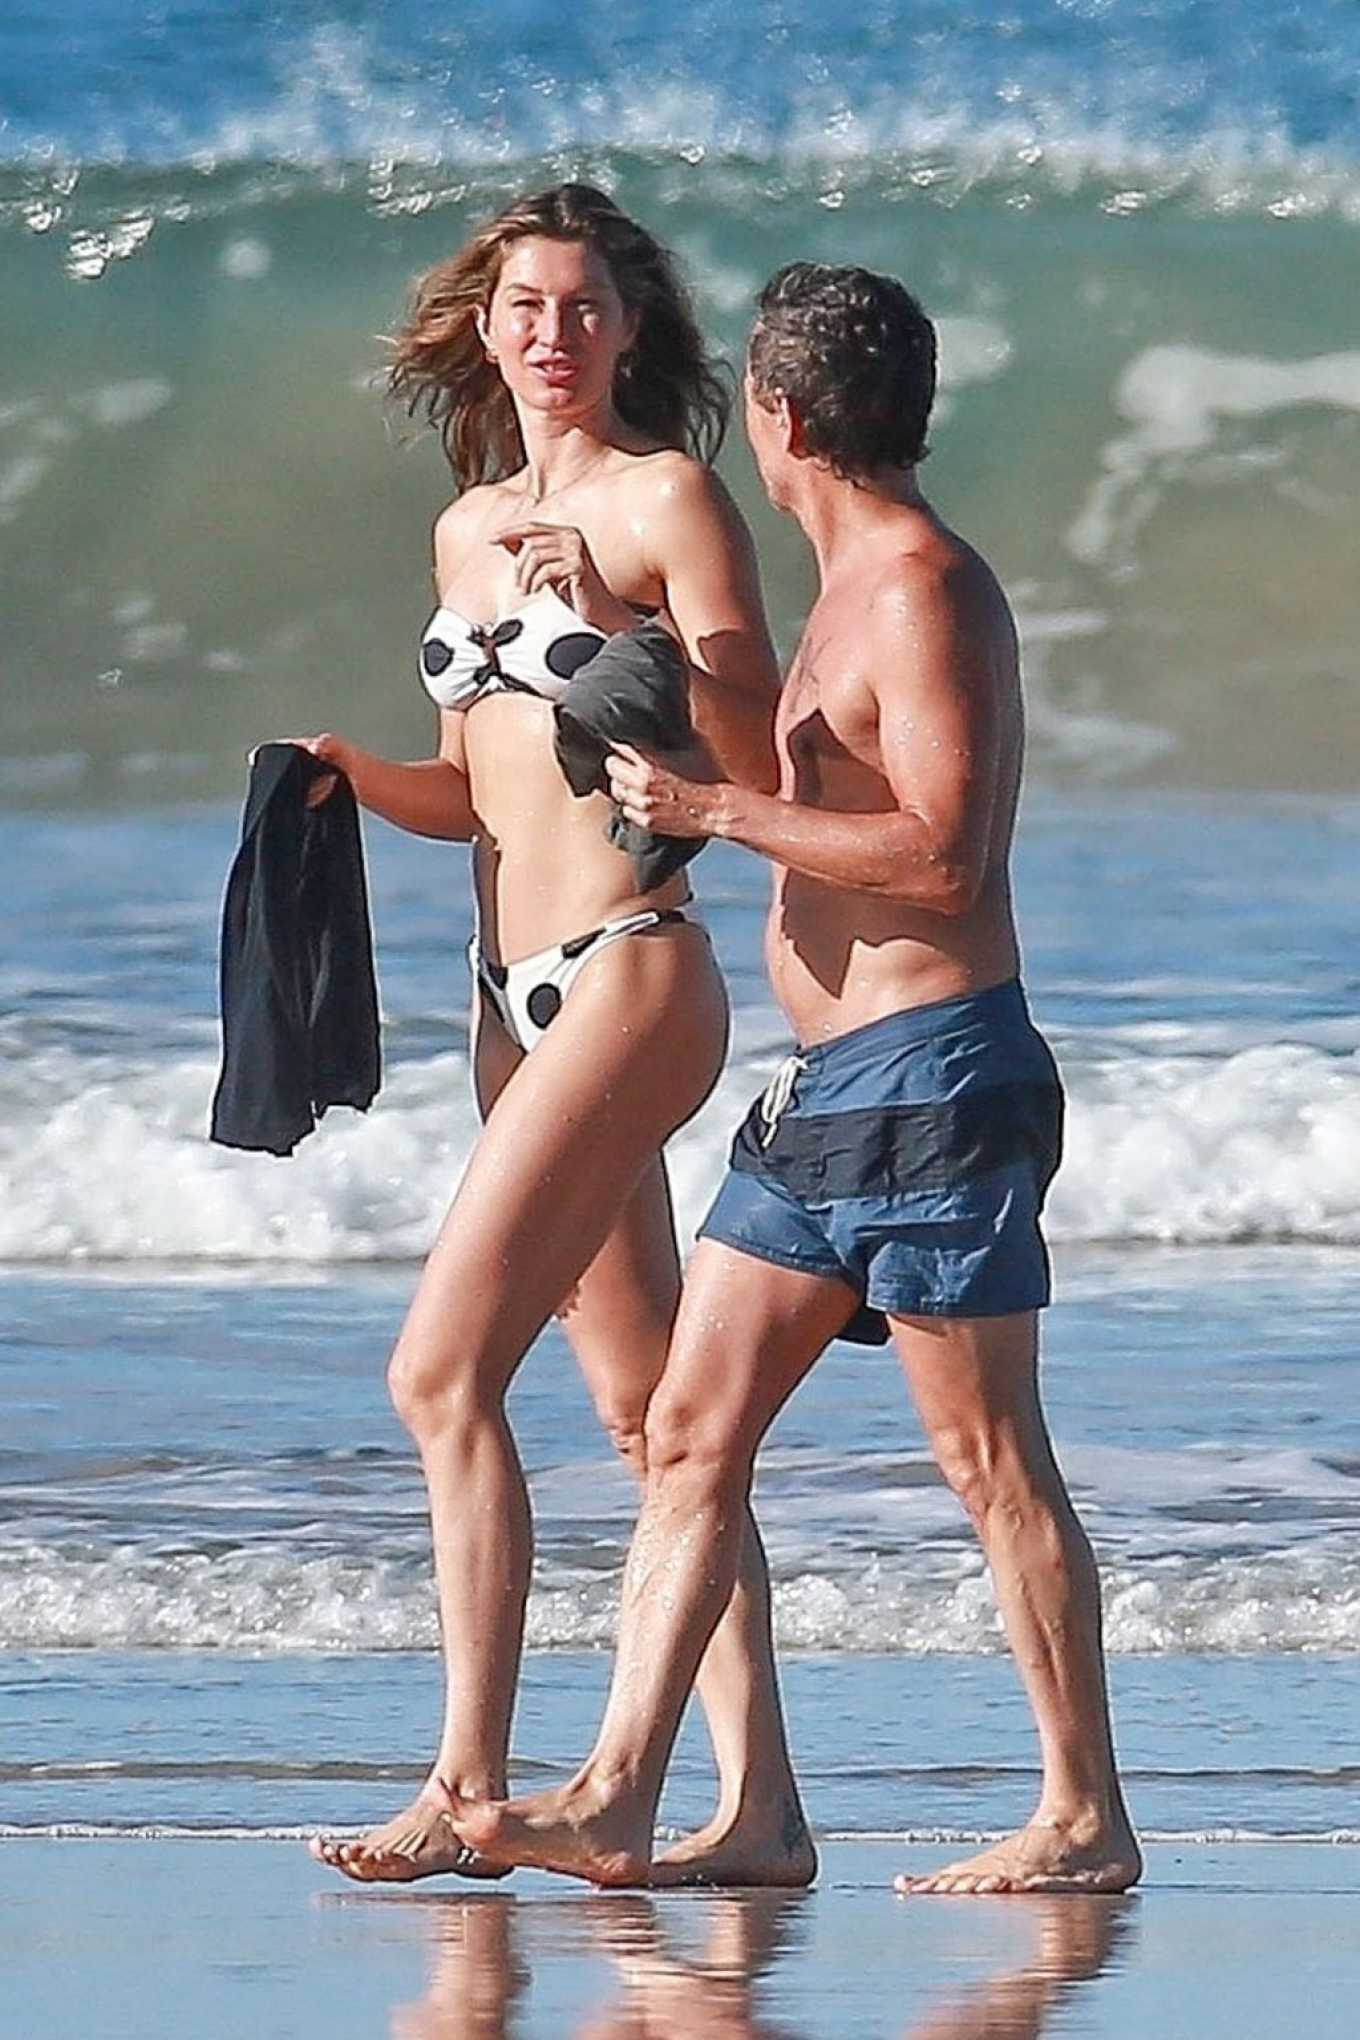 Gisele Bündchen in White and Black Bikini on Vacationing in Costa Rica